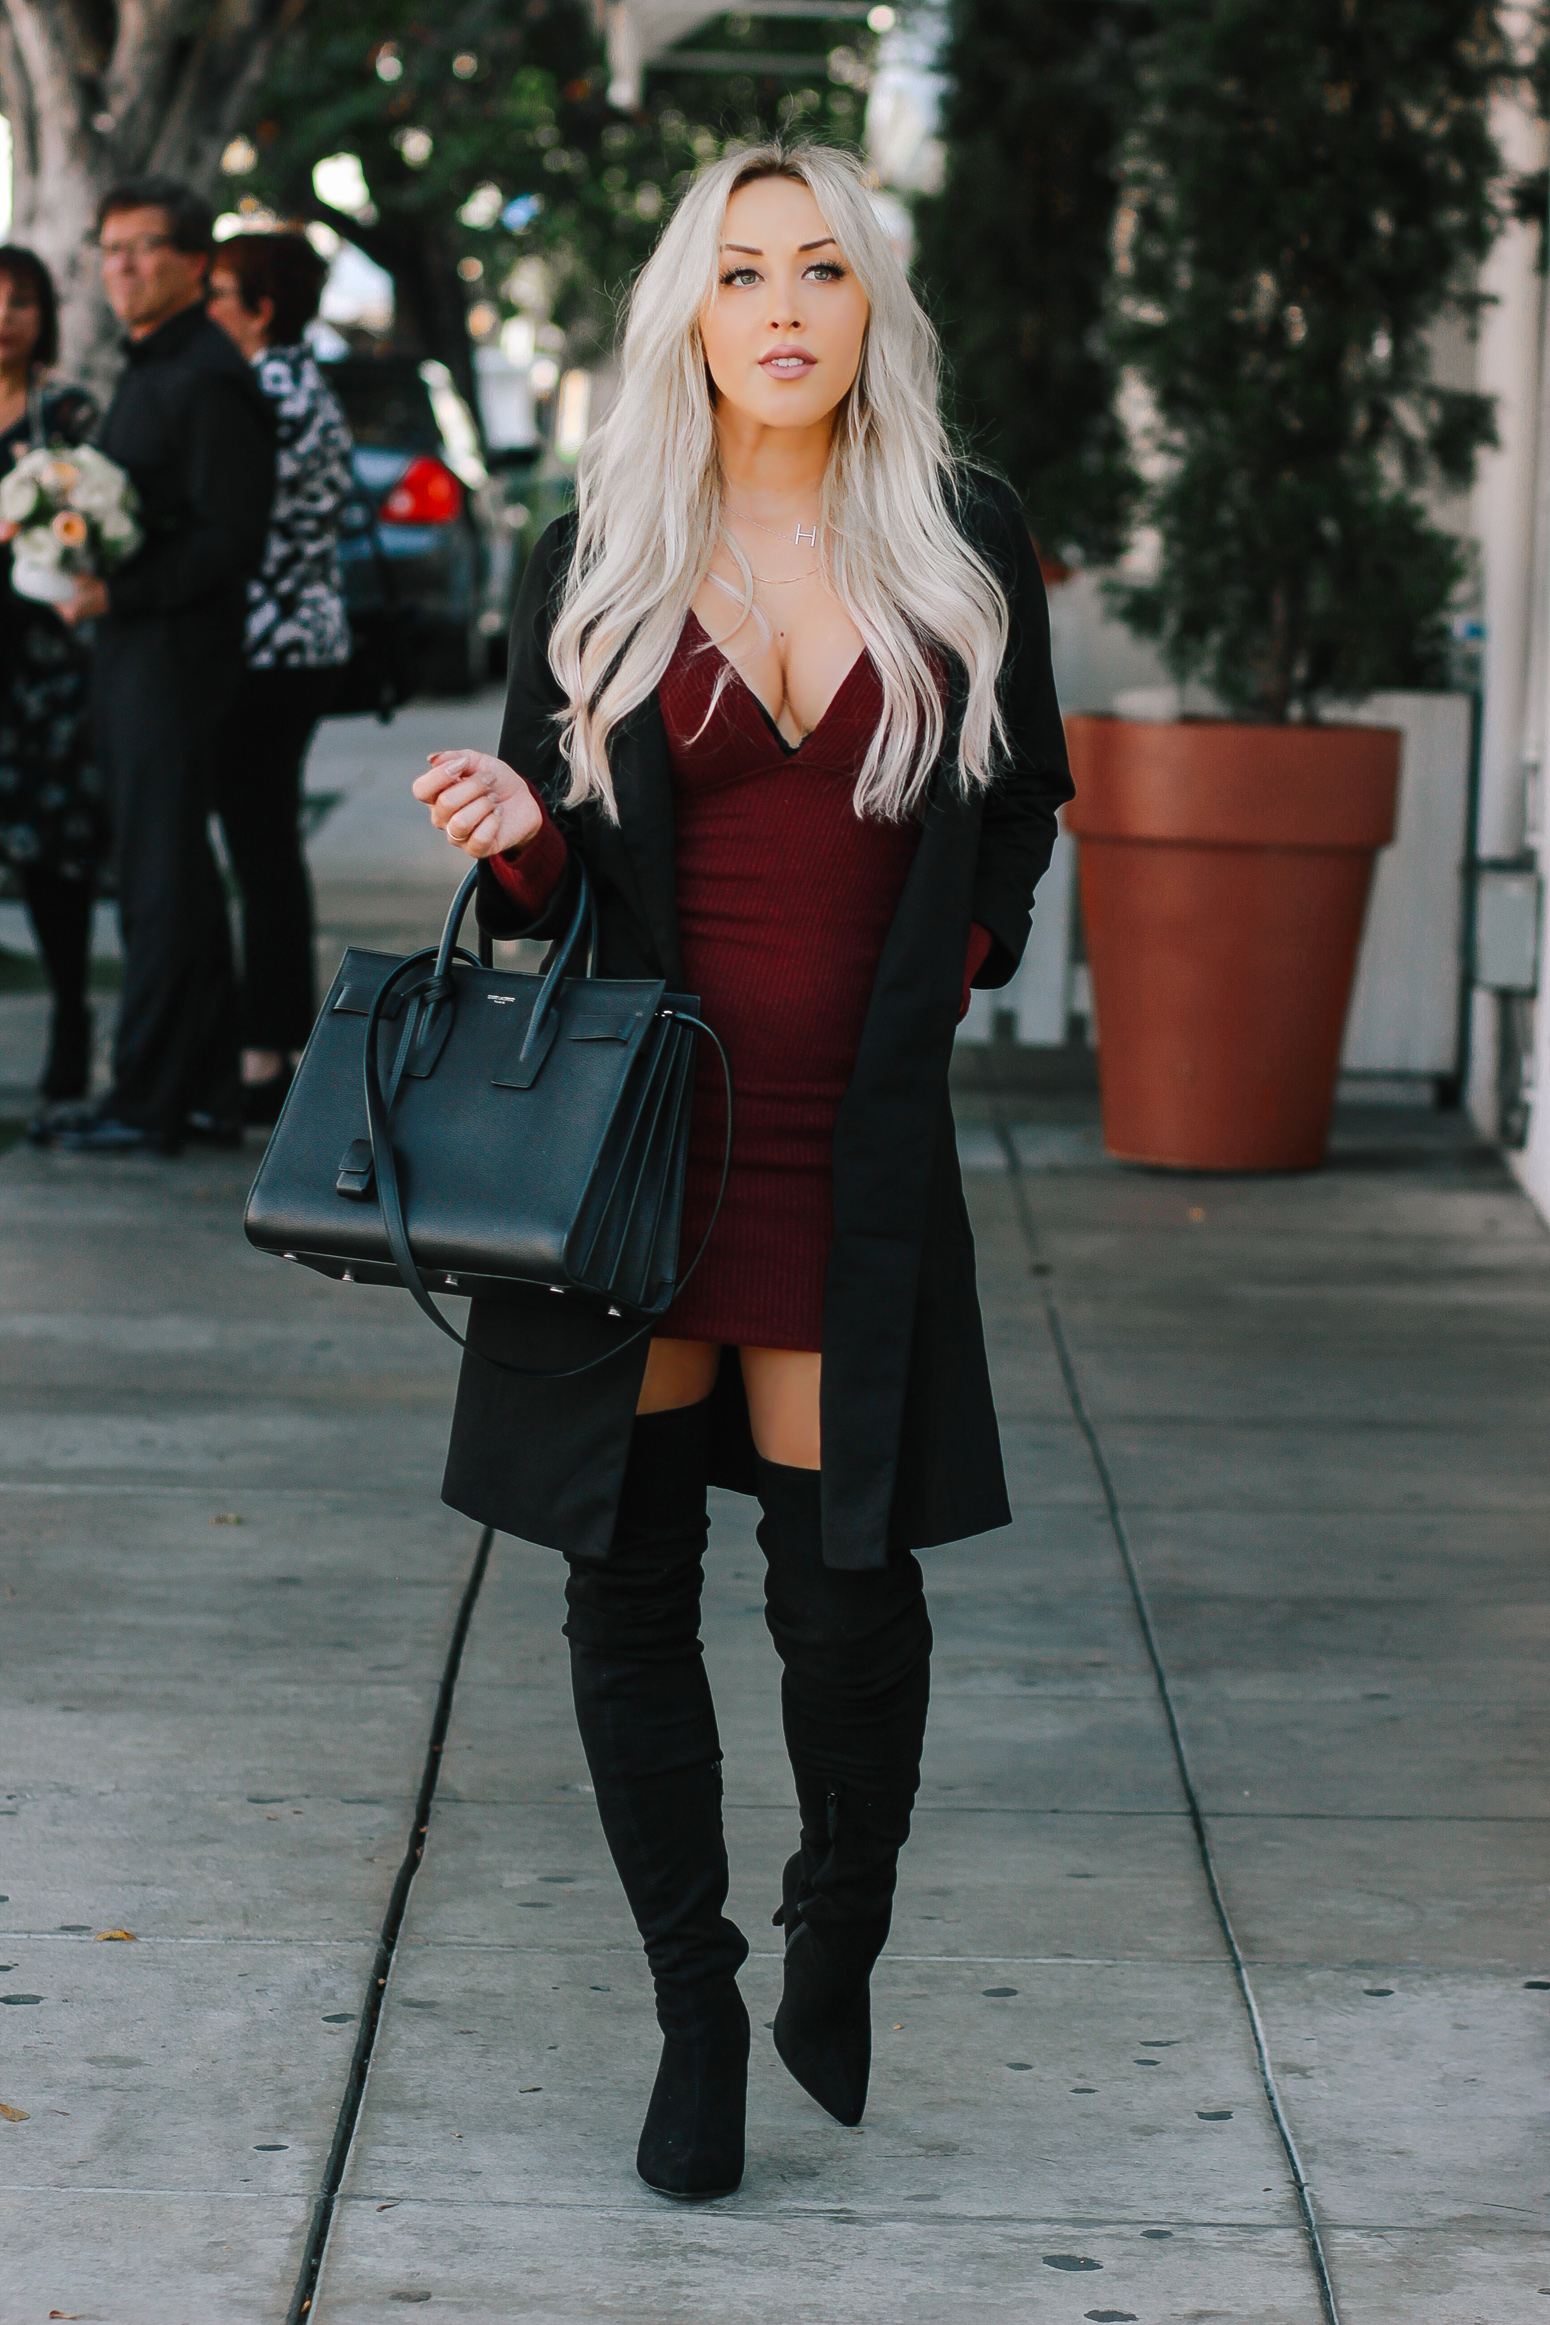 Blondie in the City | Burgundy Low Cut Dress | Thigh High Boots | Black YSL | Black Trench Coat